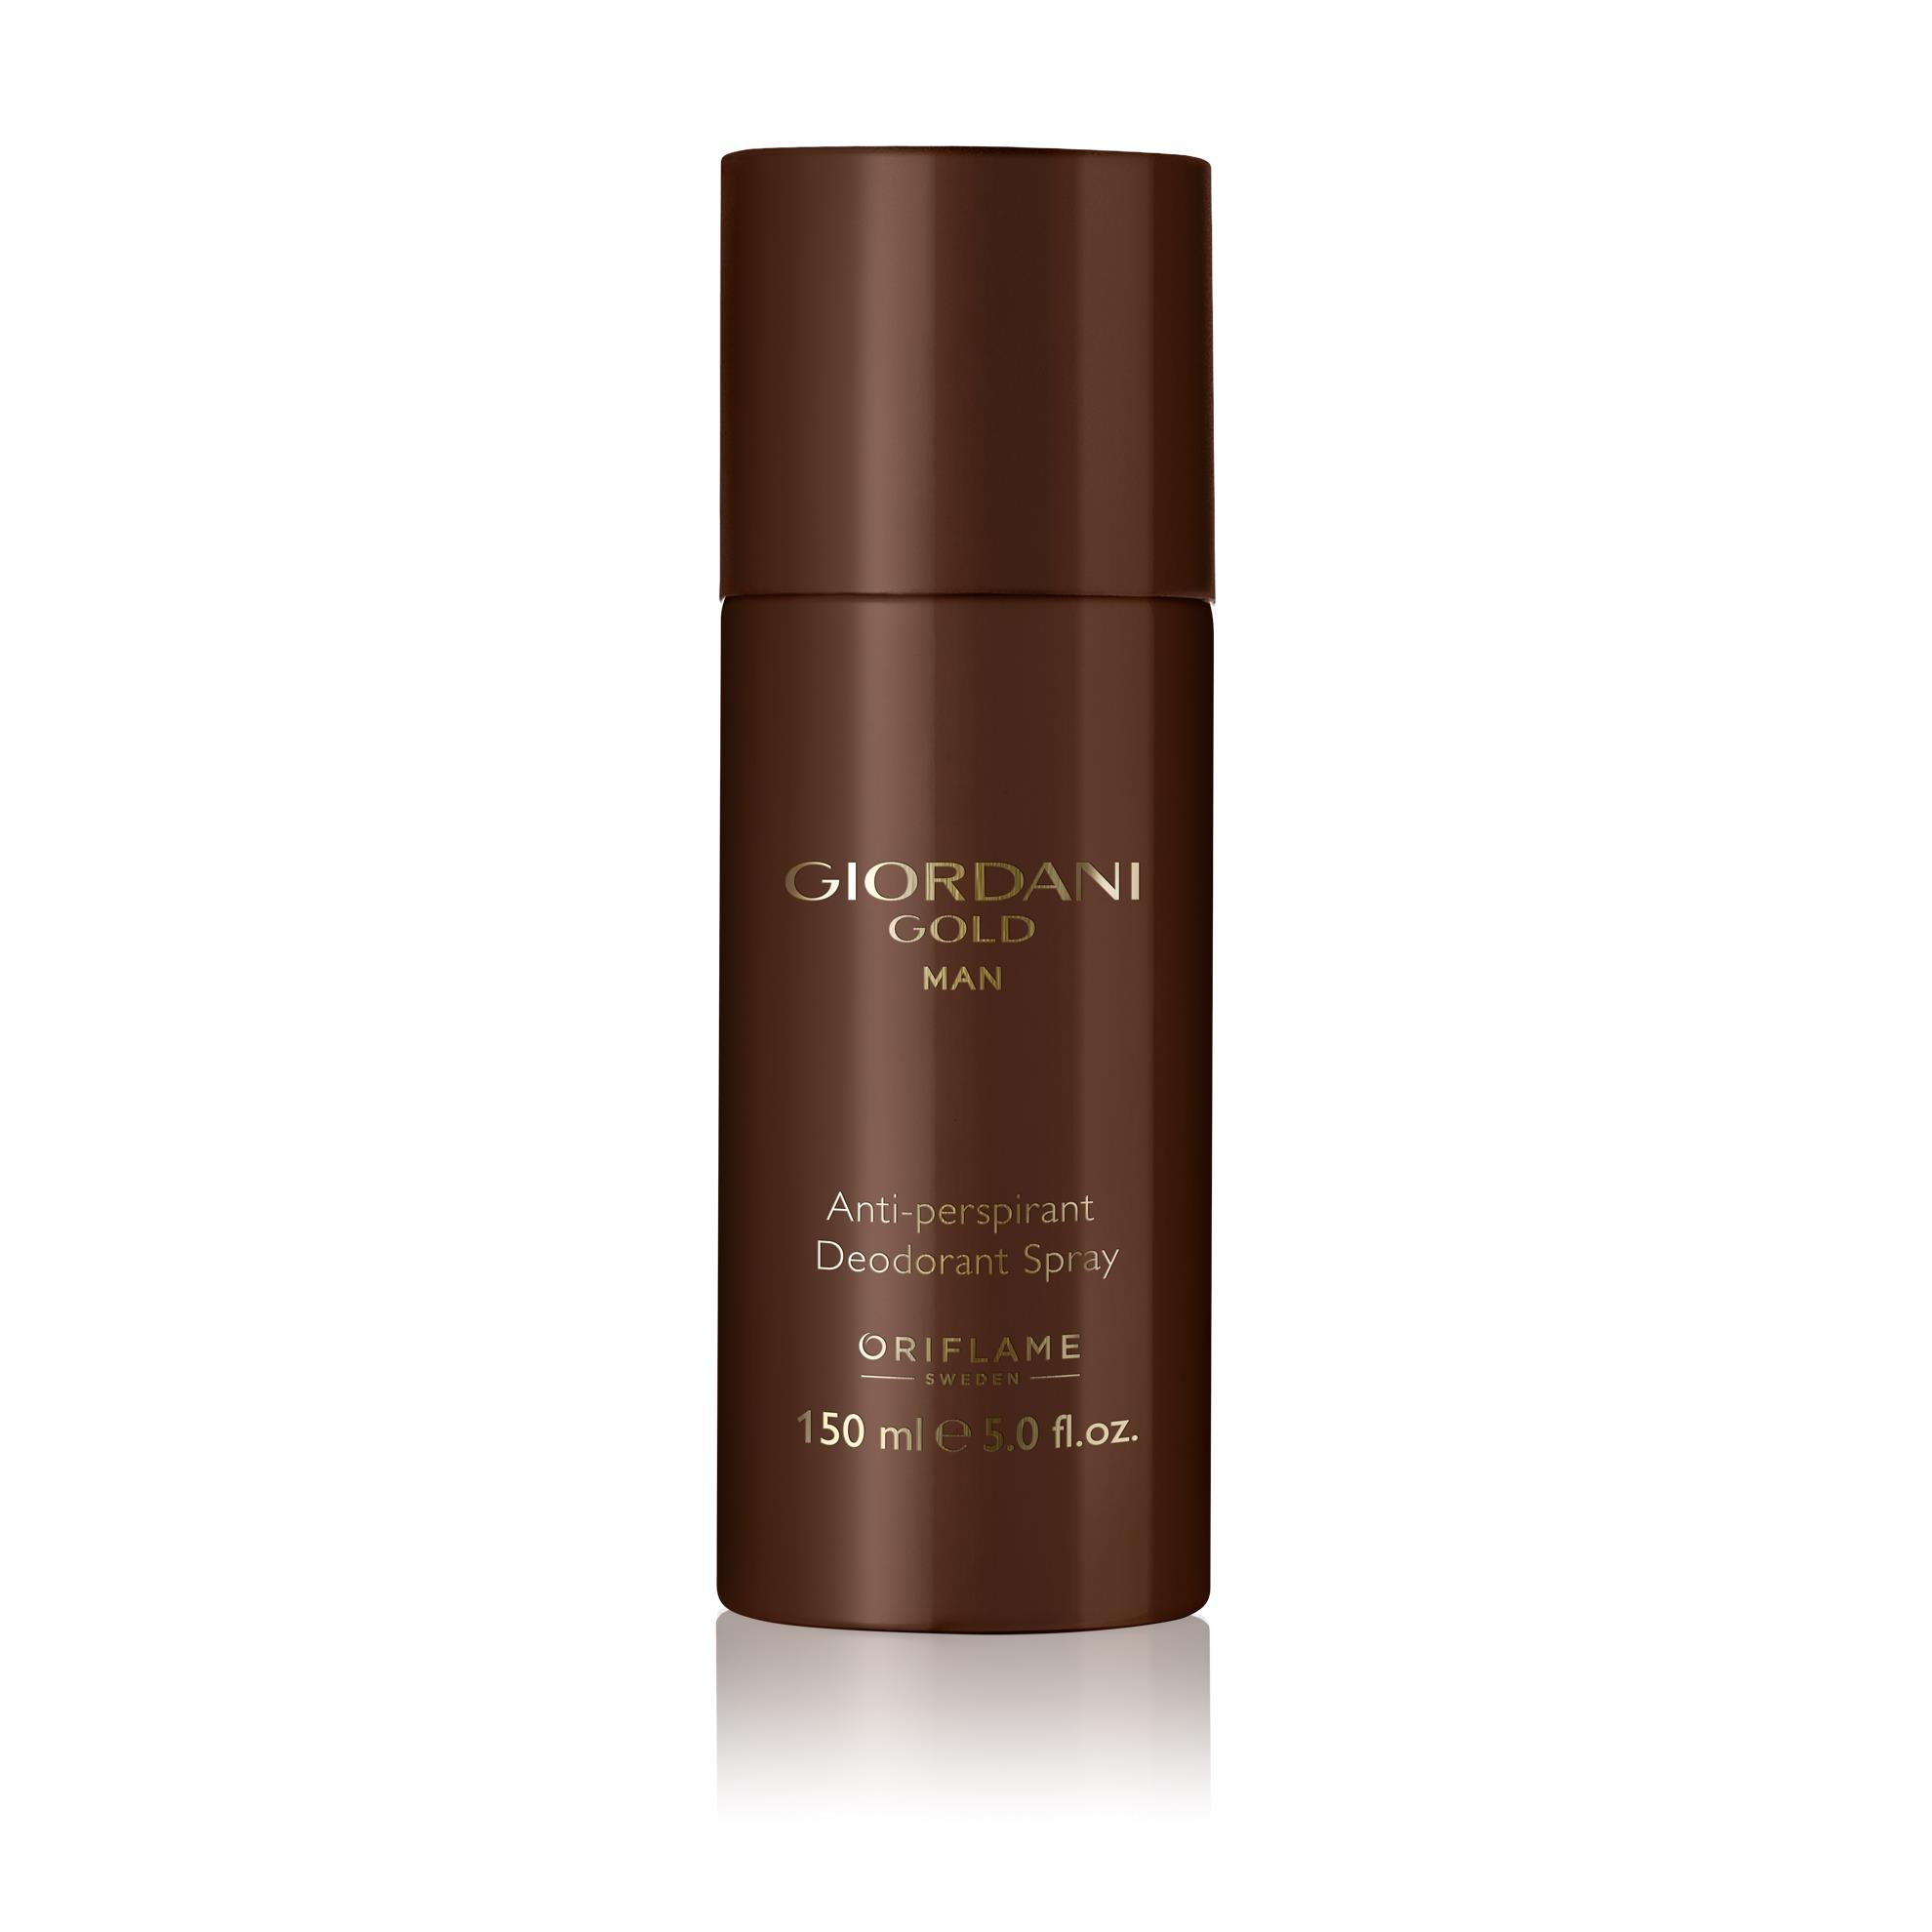 Giordani Gold Man Anti-perspirant Deodorant Spray